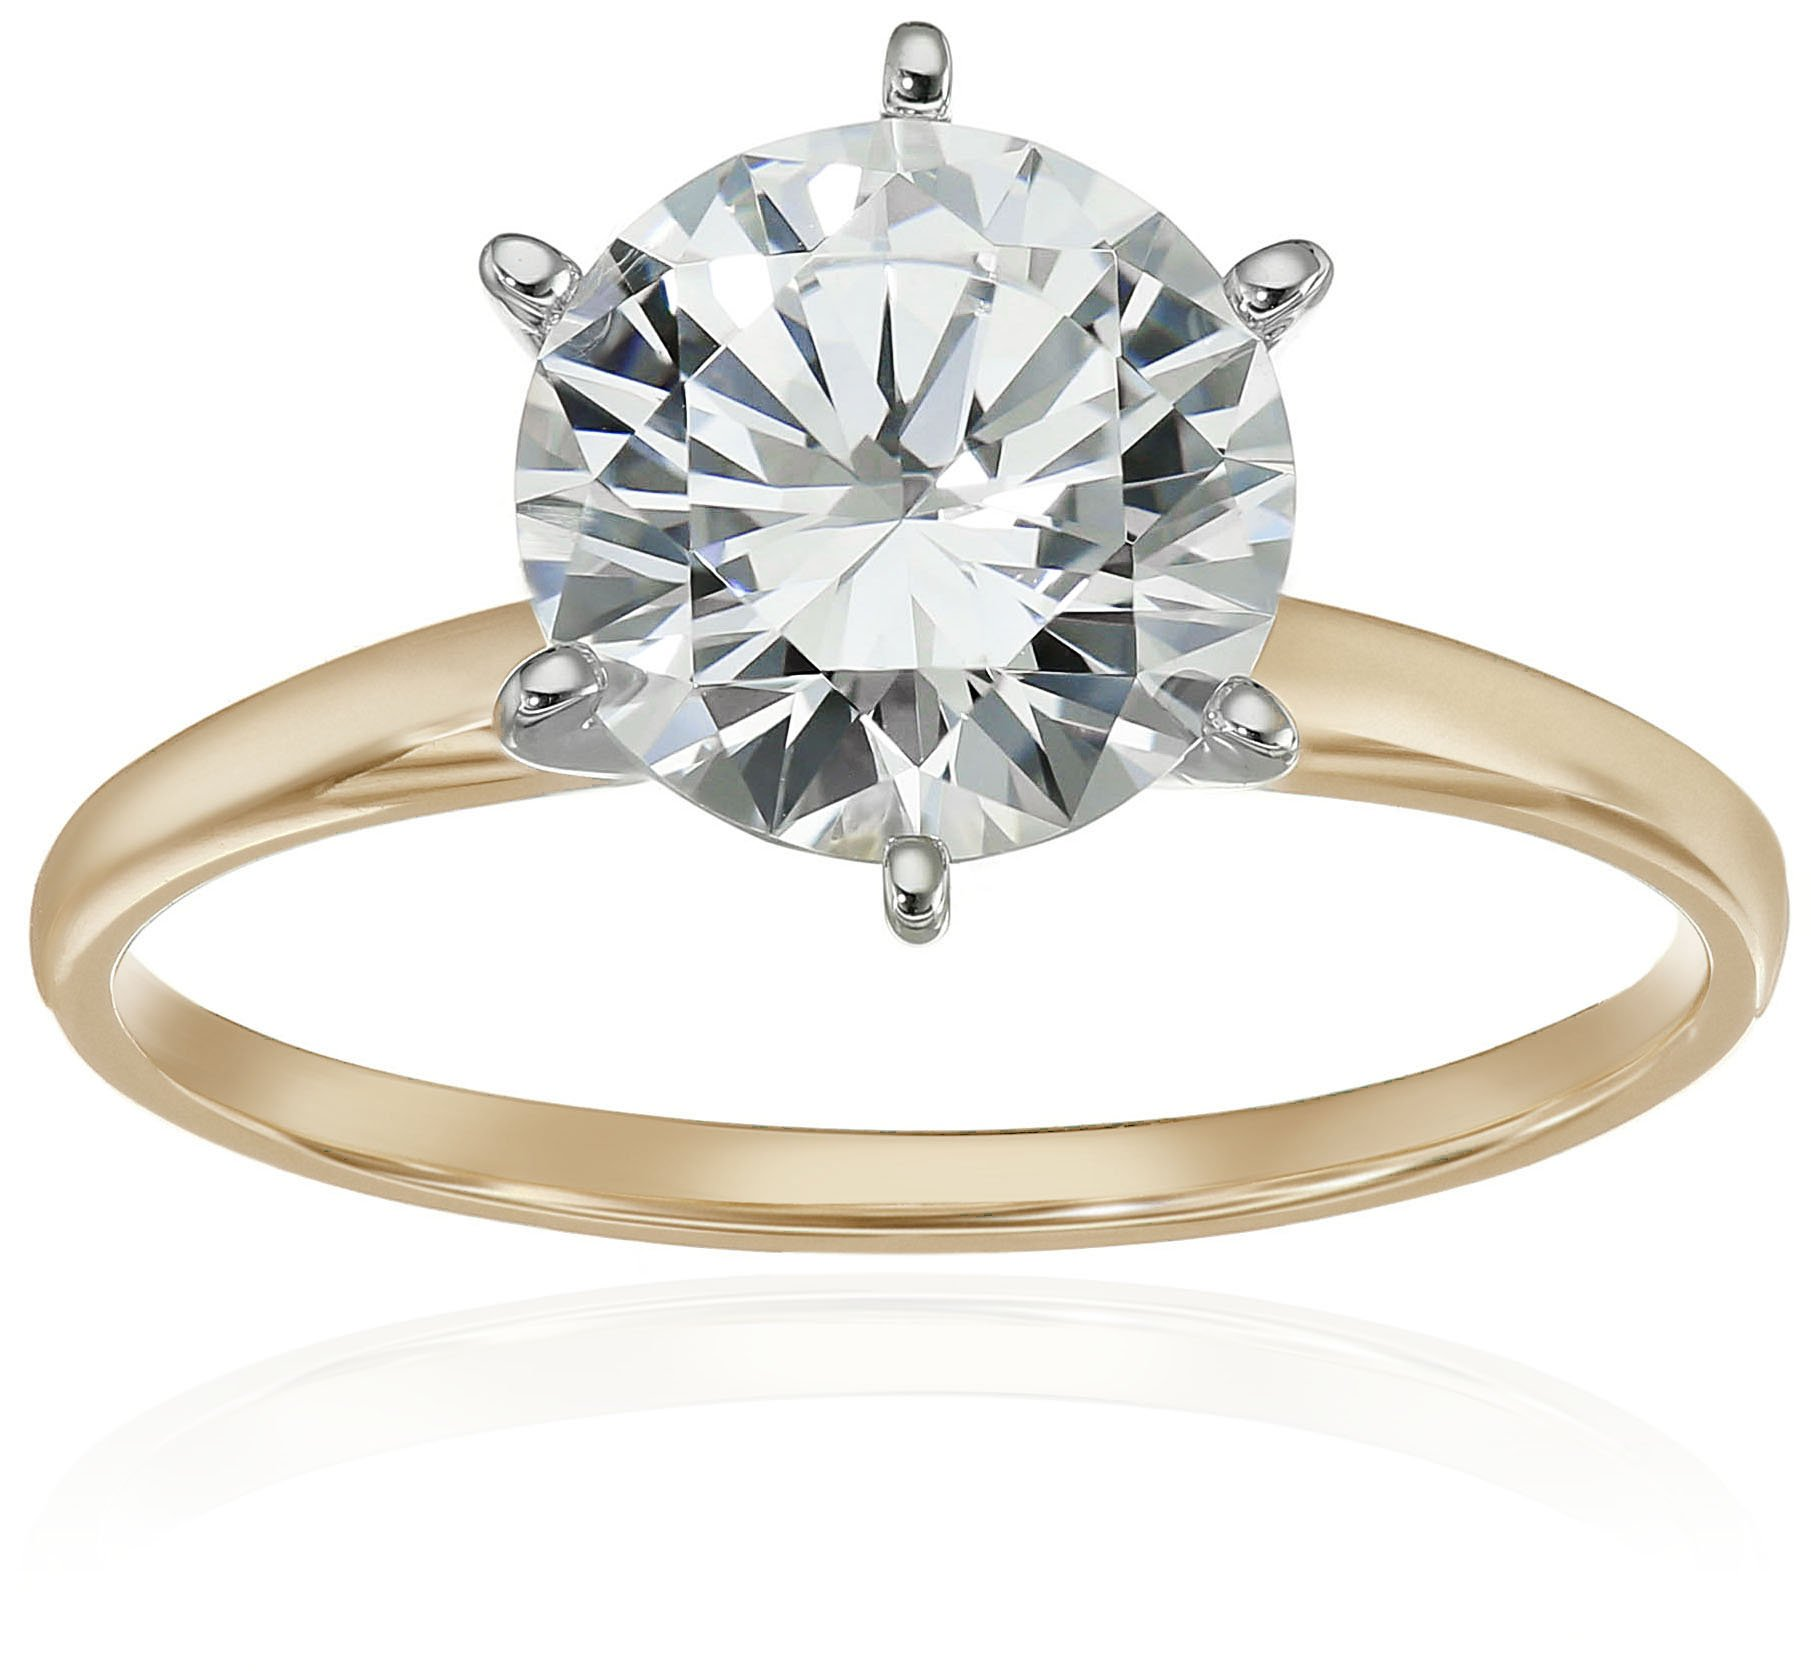 10k Yellow Gold Round-Cut Solitaire with Swarovski Zirconia Ring, Size 6